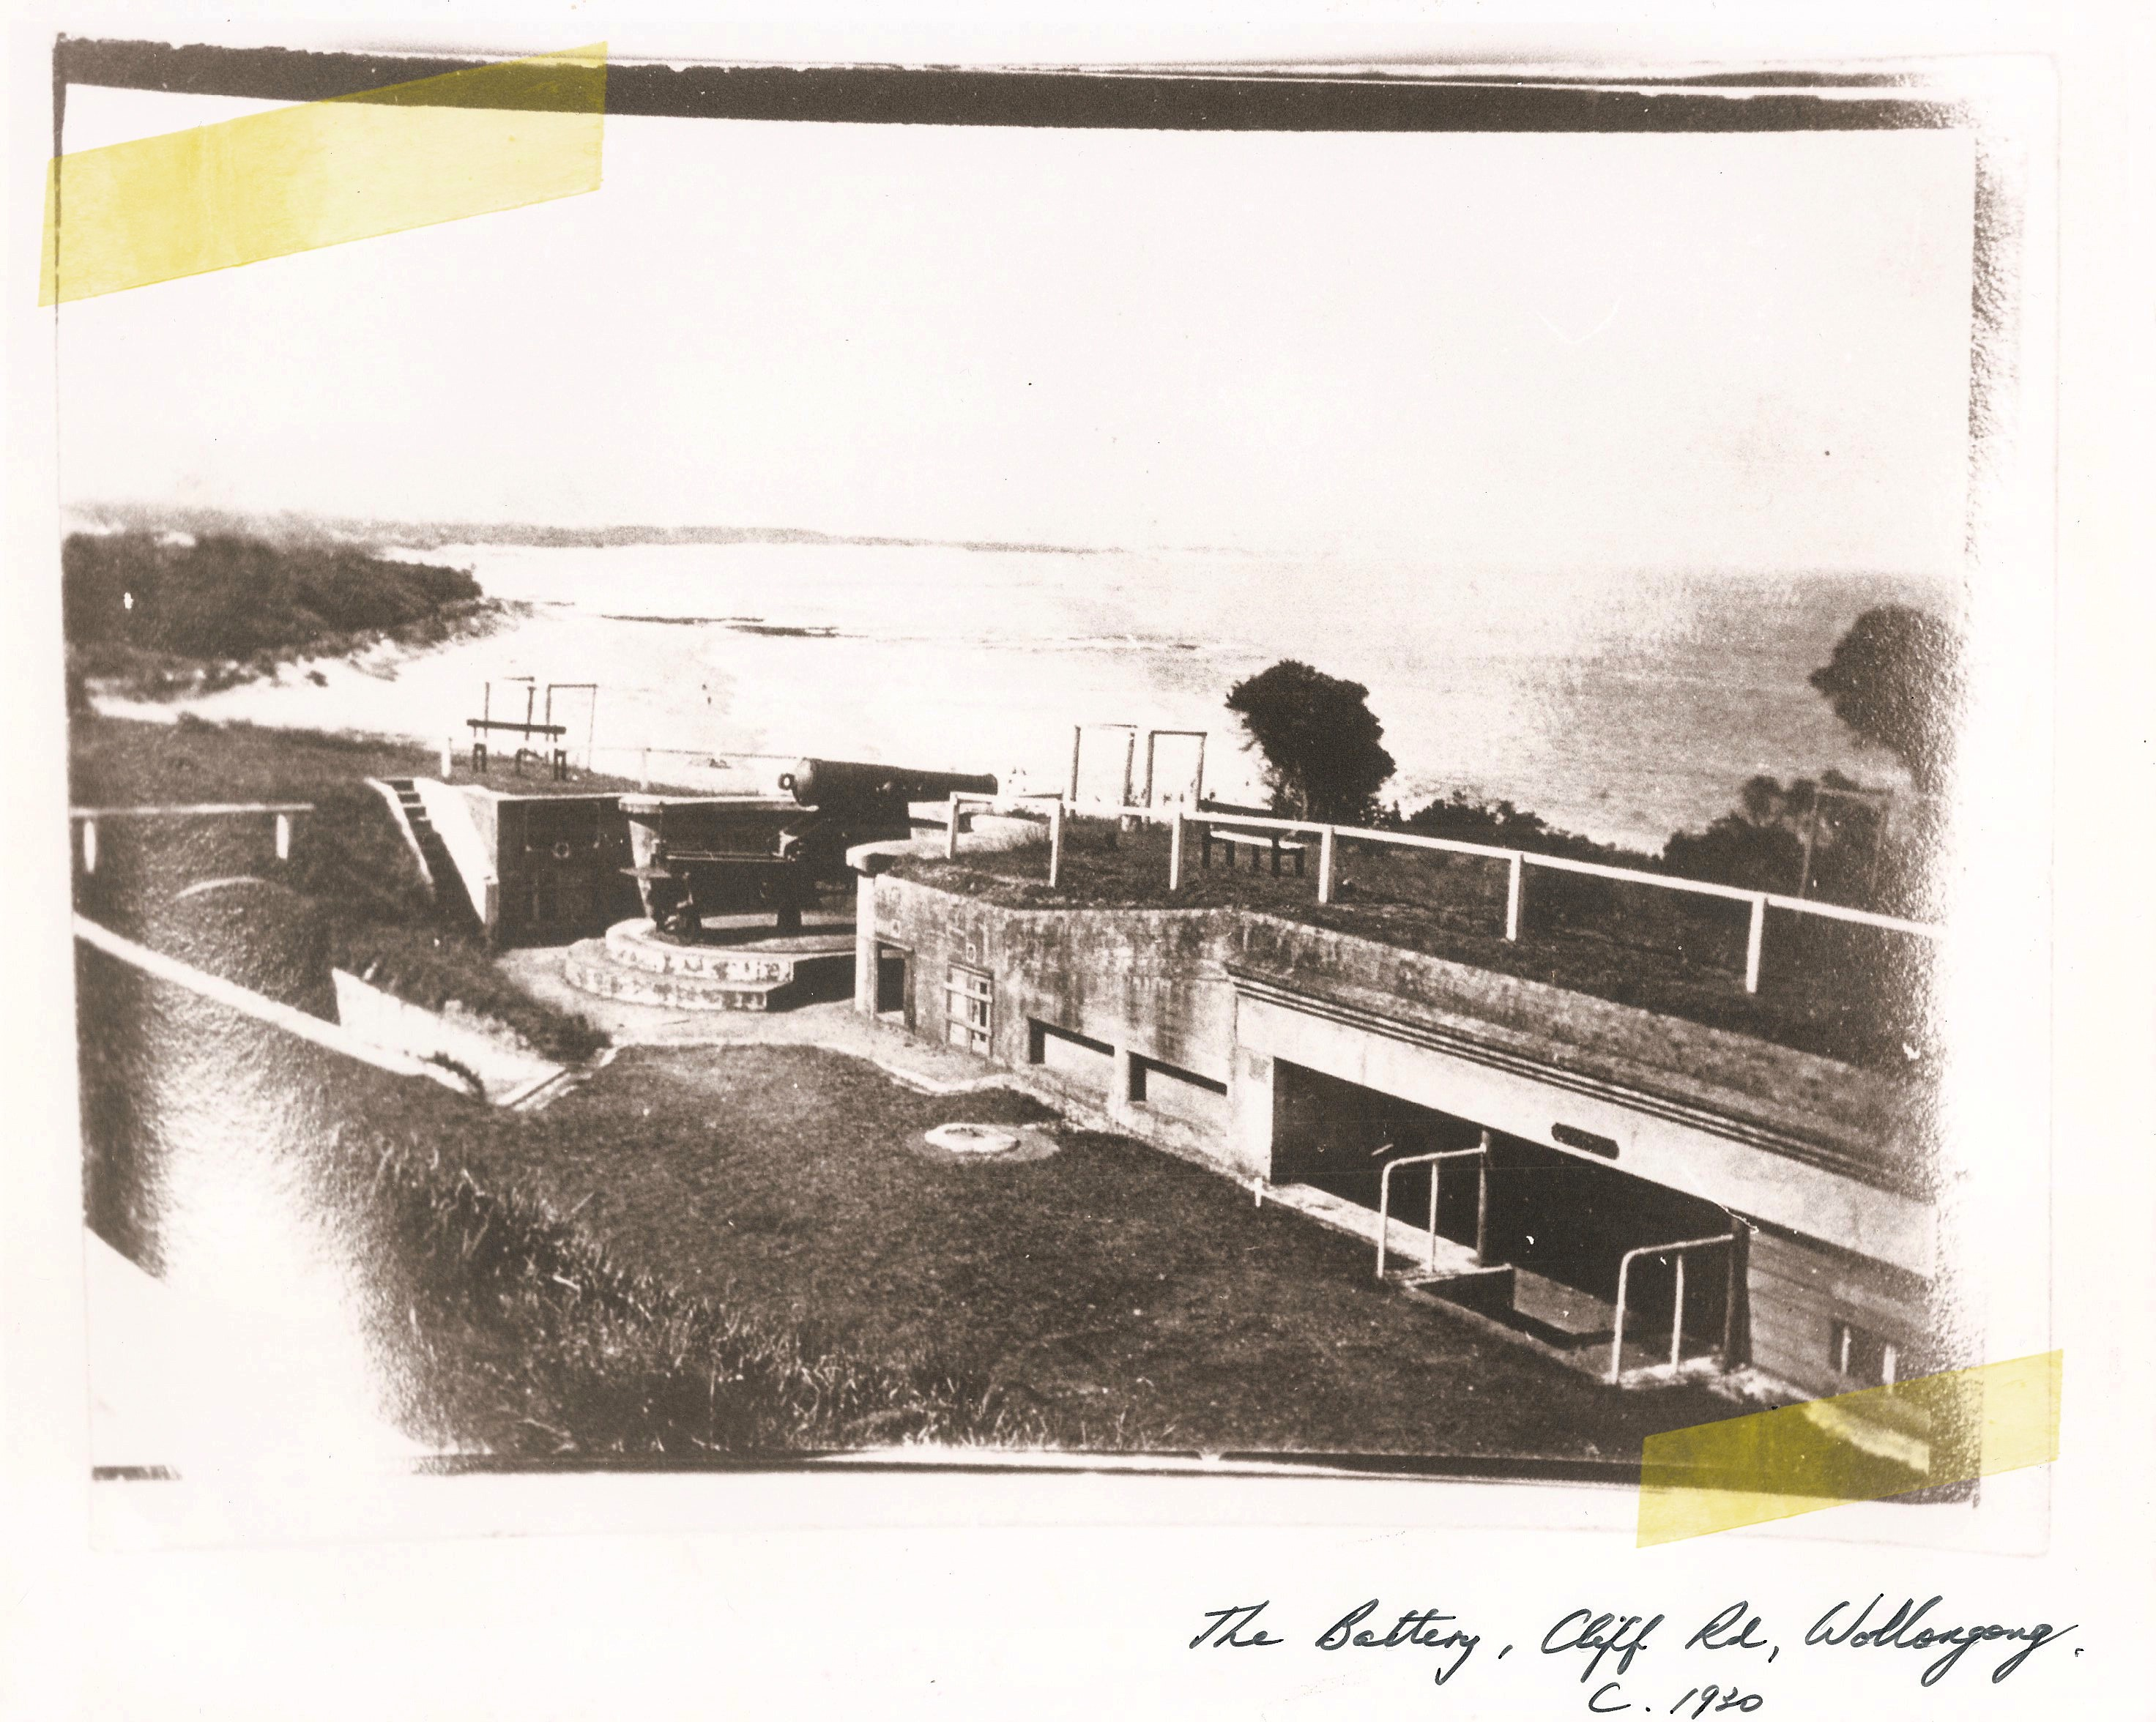 the battery cliff road wollongong 1930 copy